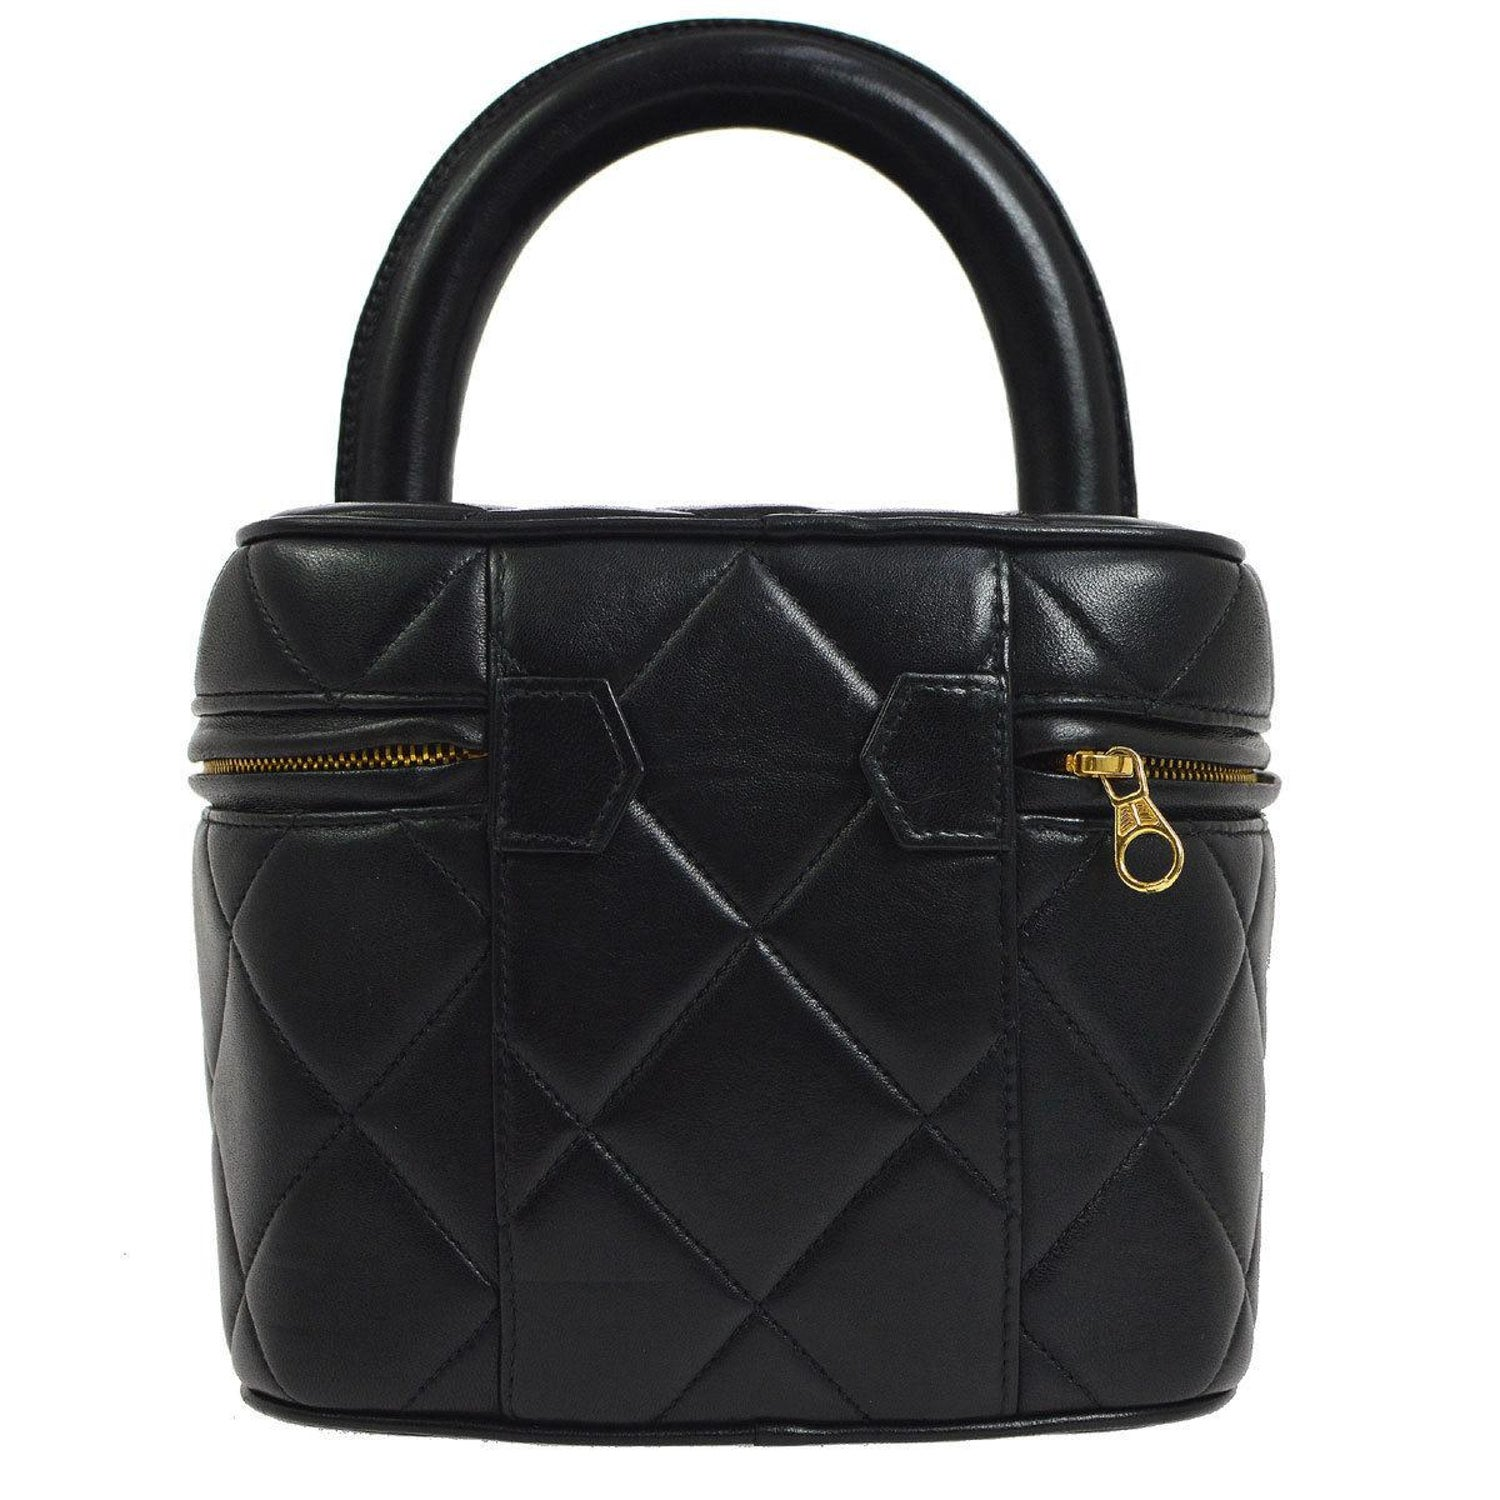 Chanel Black Leather Top Handle Evening Satchel Vanity Travel Zip Around Bag  For Sale at 1stdibs df3b48a3ff104